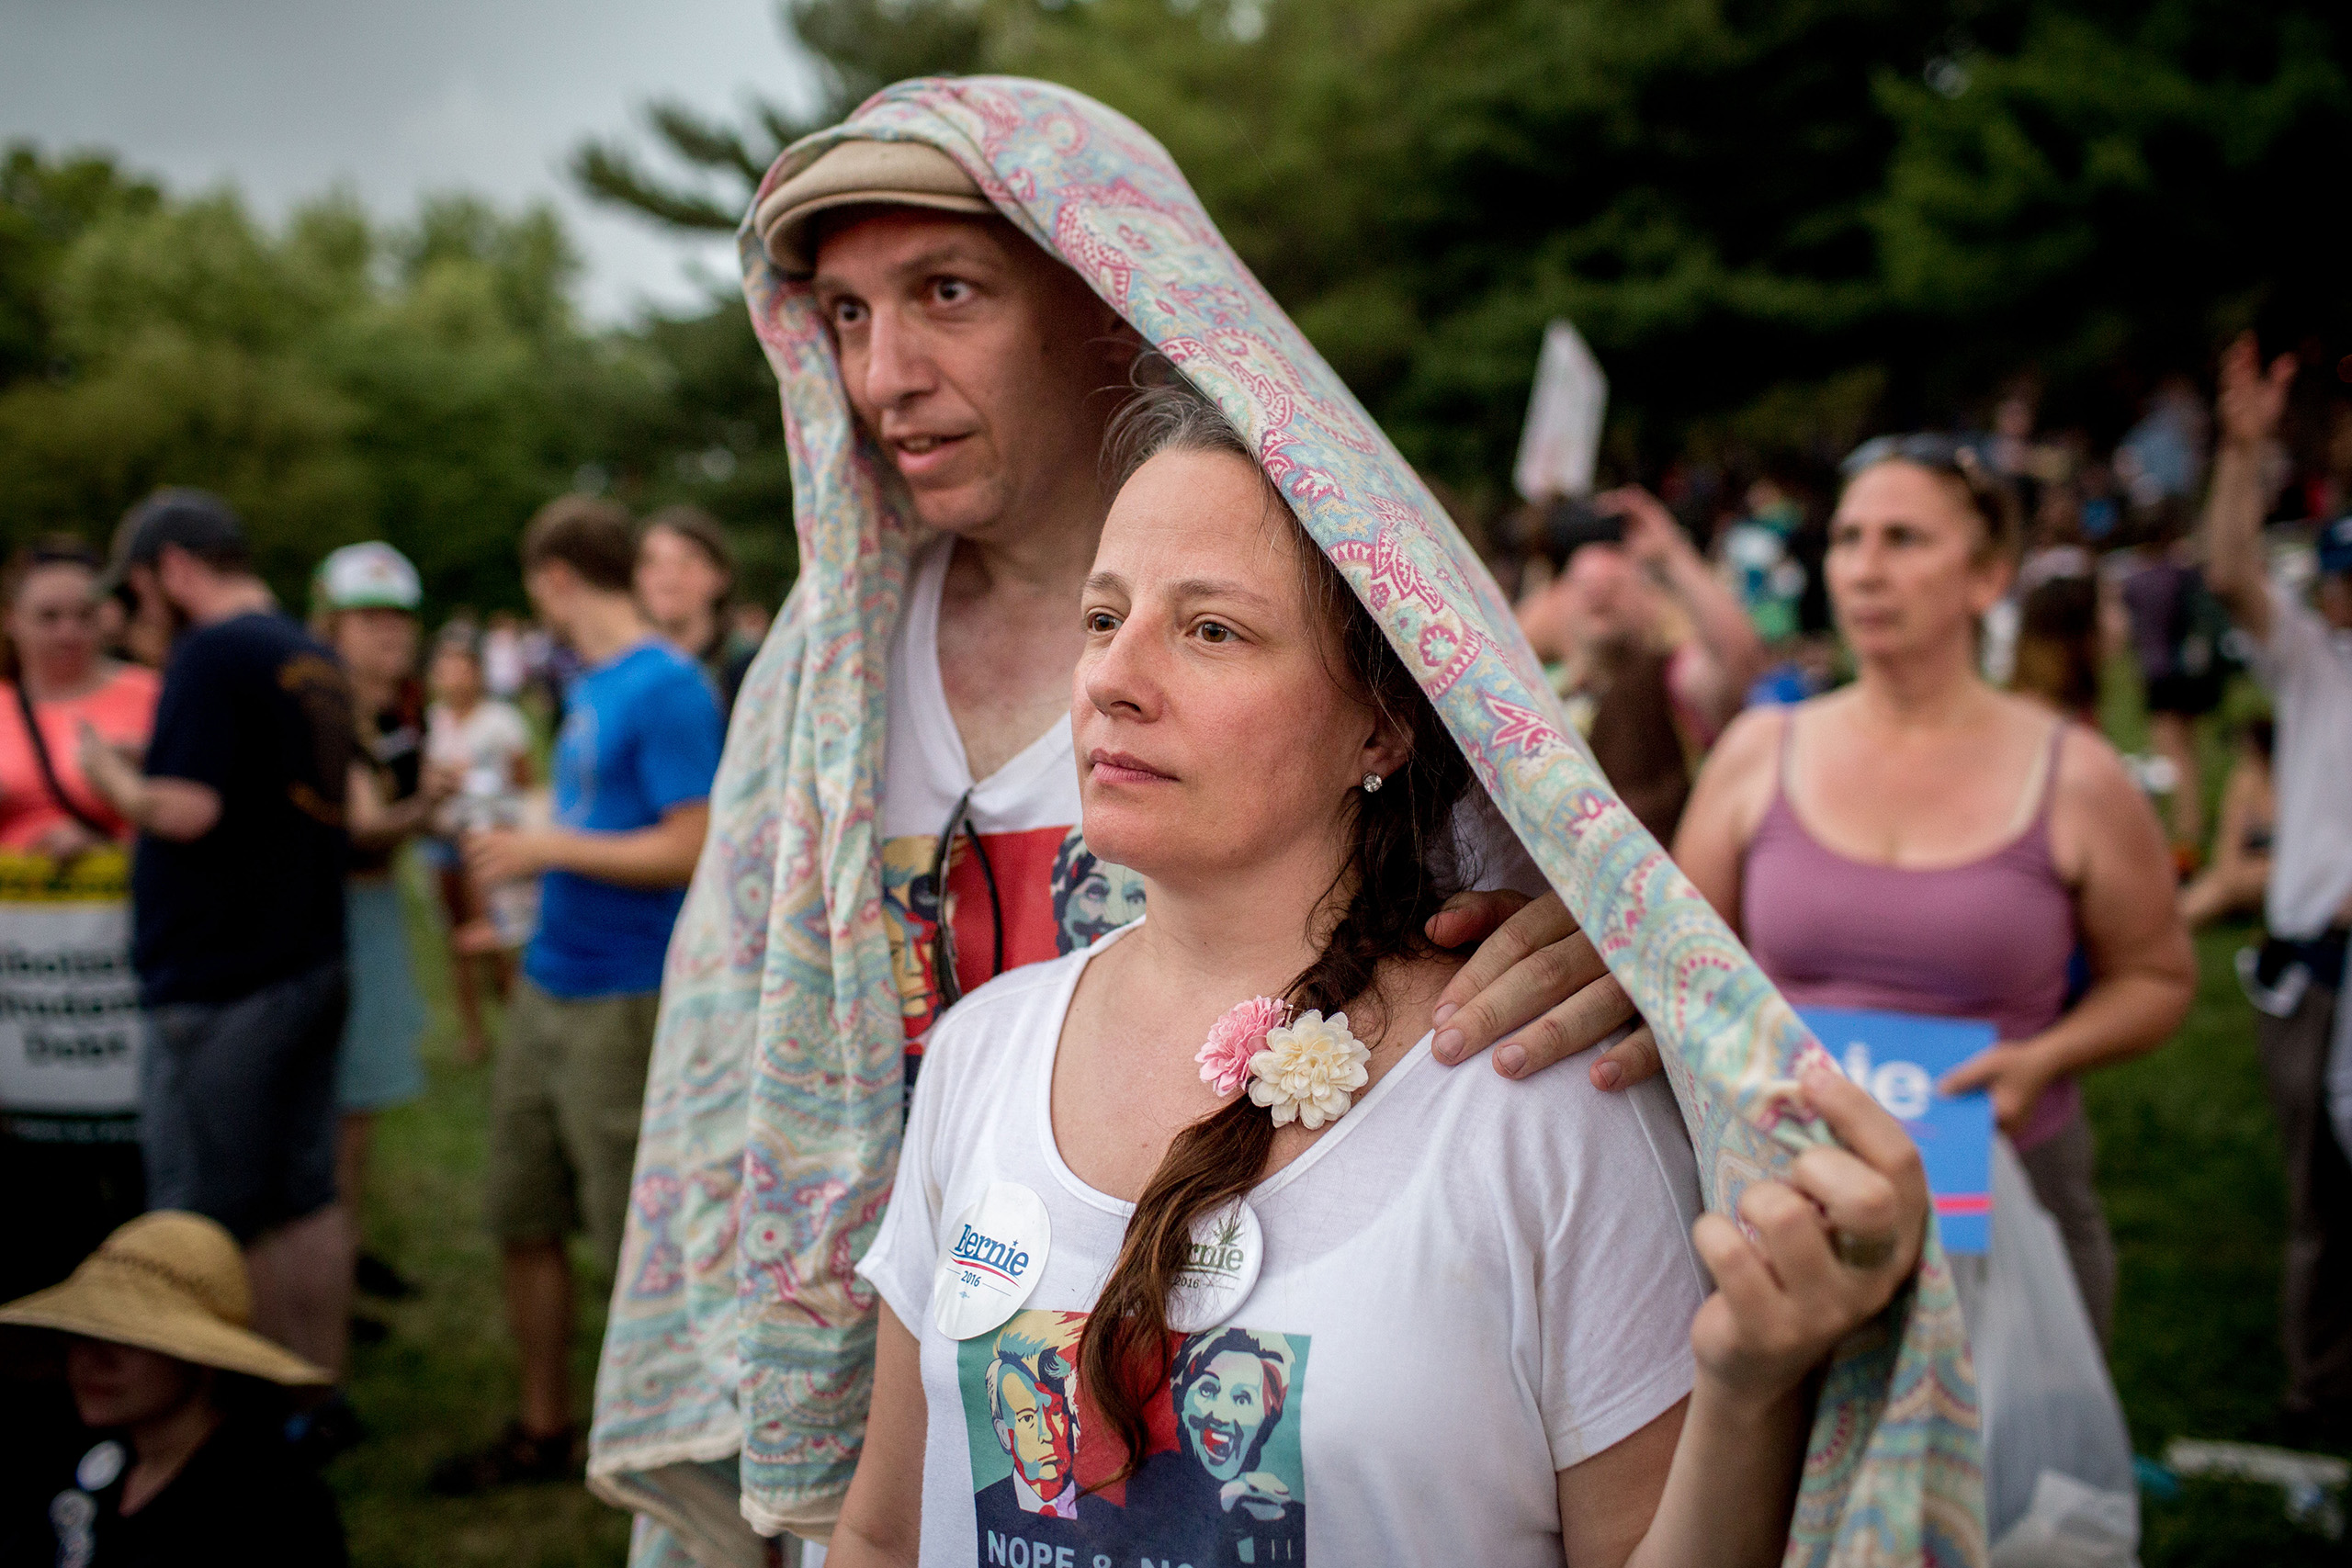 Protesters convened at Franklin Roosevelt Park outside the Democratic National Convention at the Wells Fargo Center on July 25, 2016 in Philadelphia, PA. At a tent pitched in the park, they were addressed by many speakers including Green Party Candidate Jill Stein.